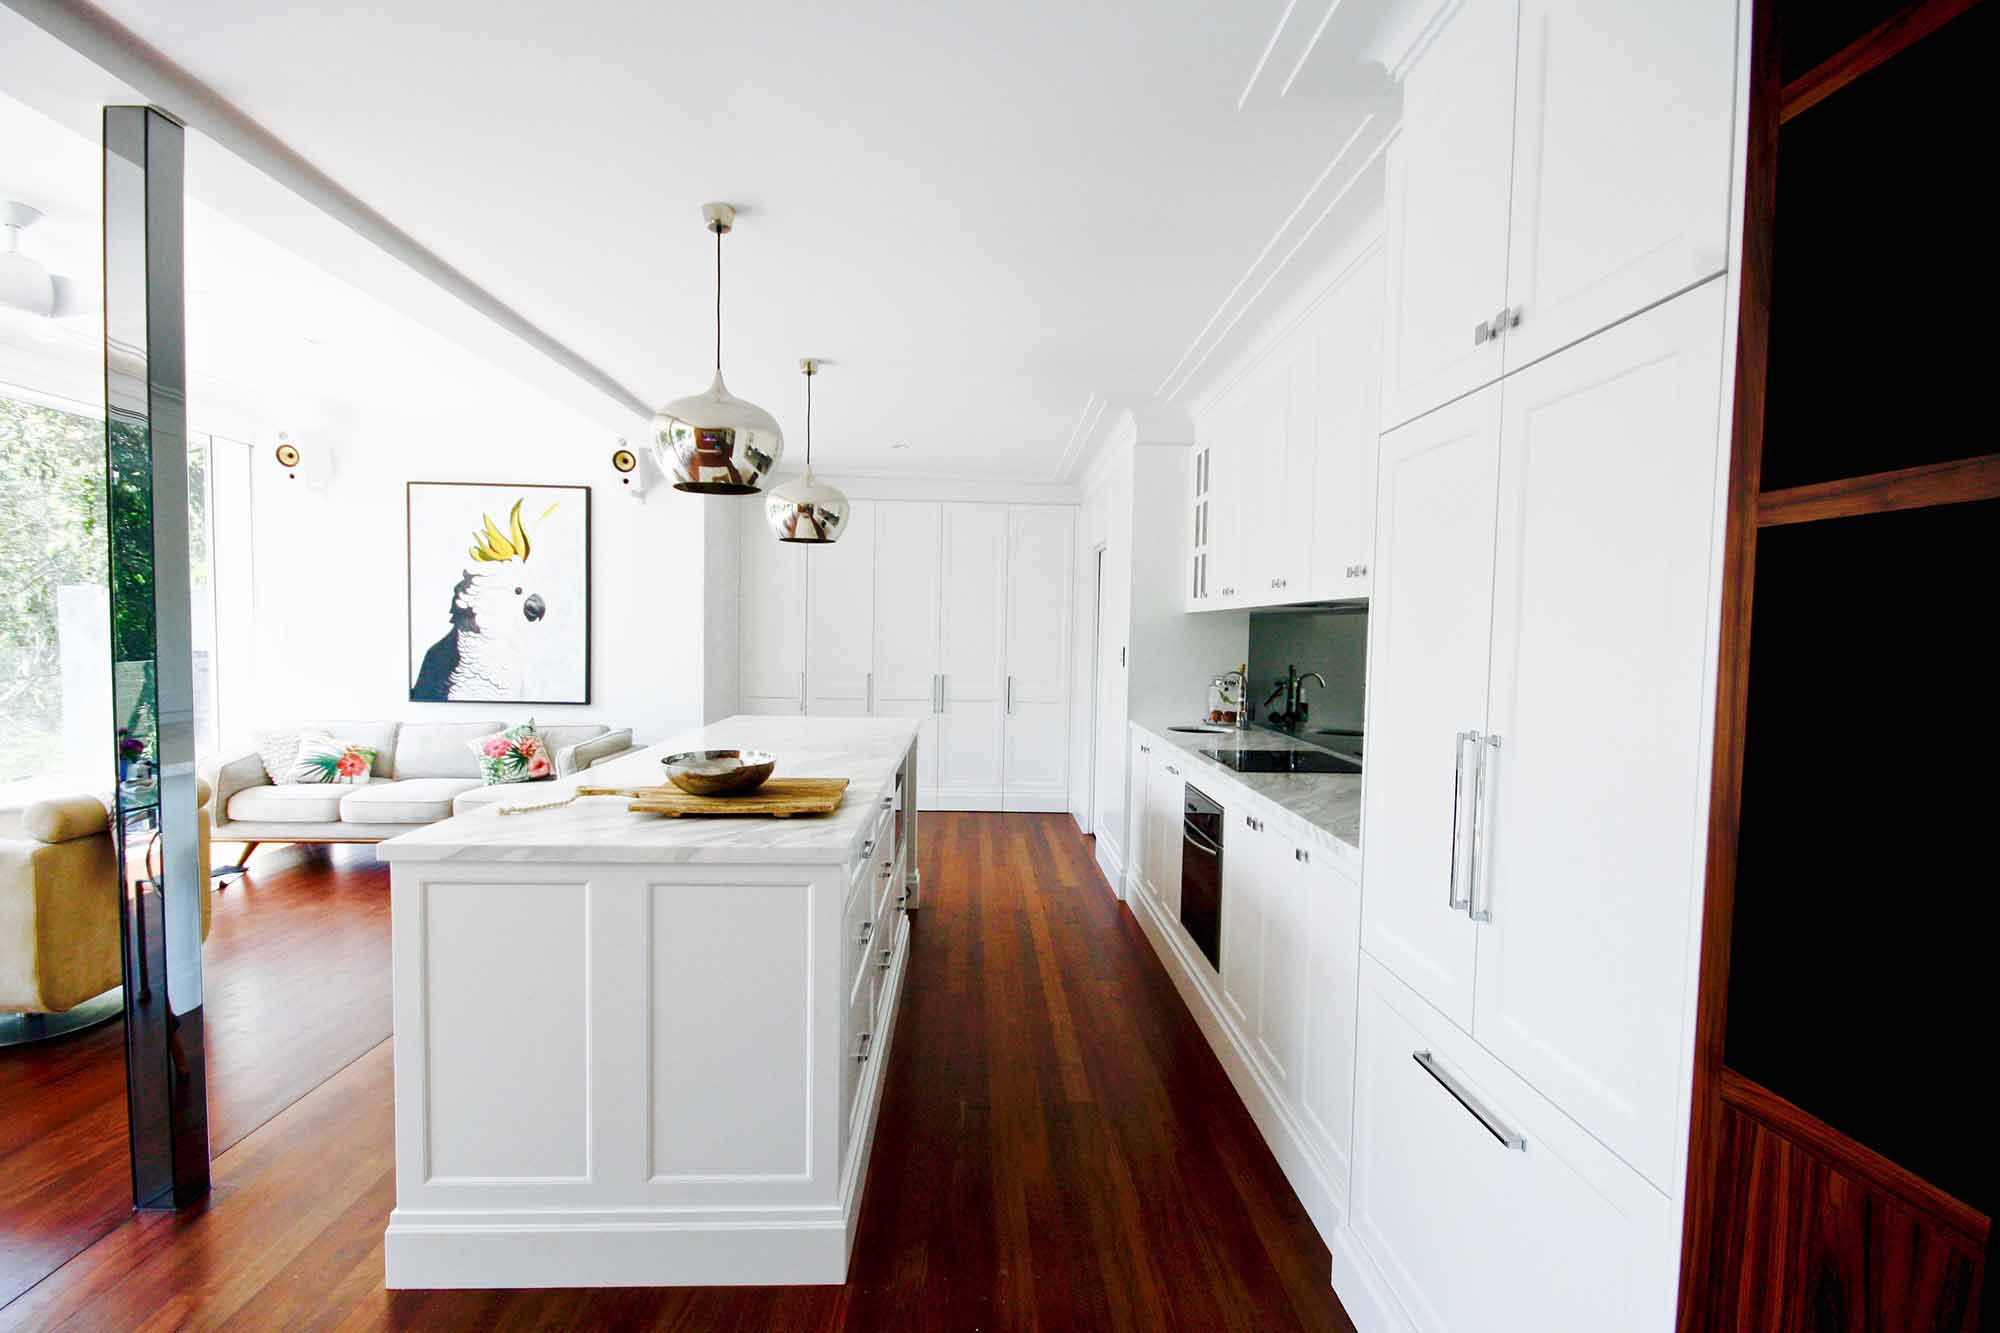 Kitchens By Emanuel - Provincial/Hamptons Kitchens